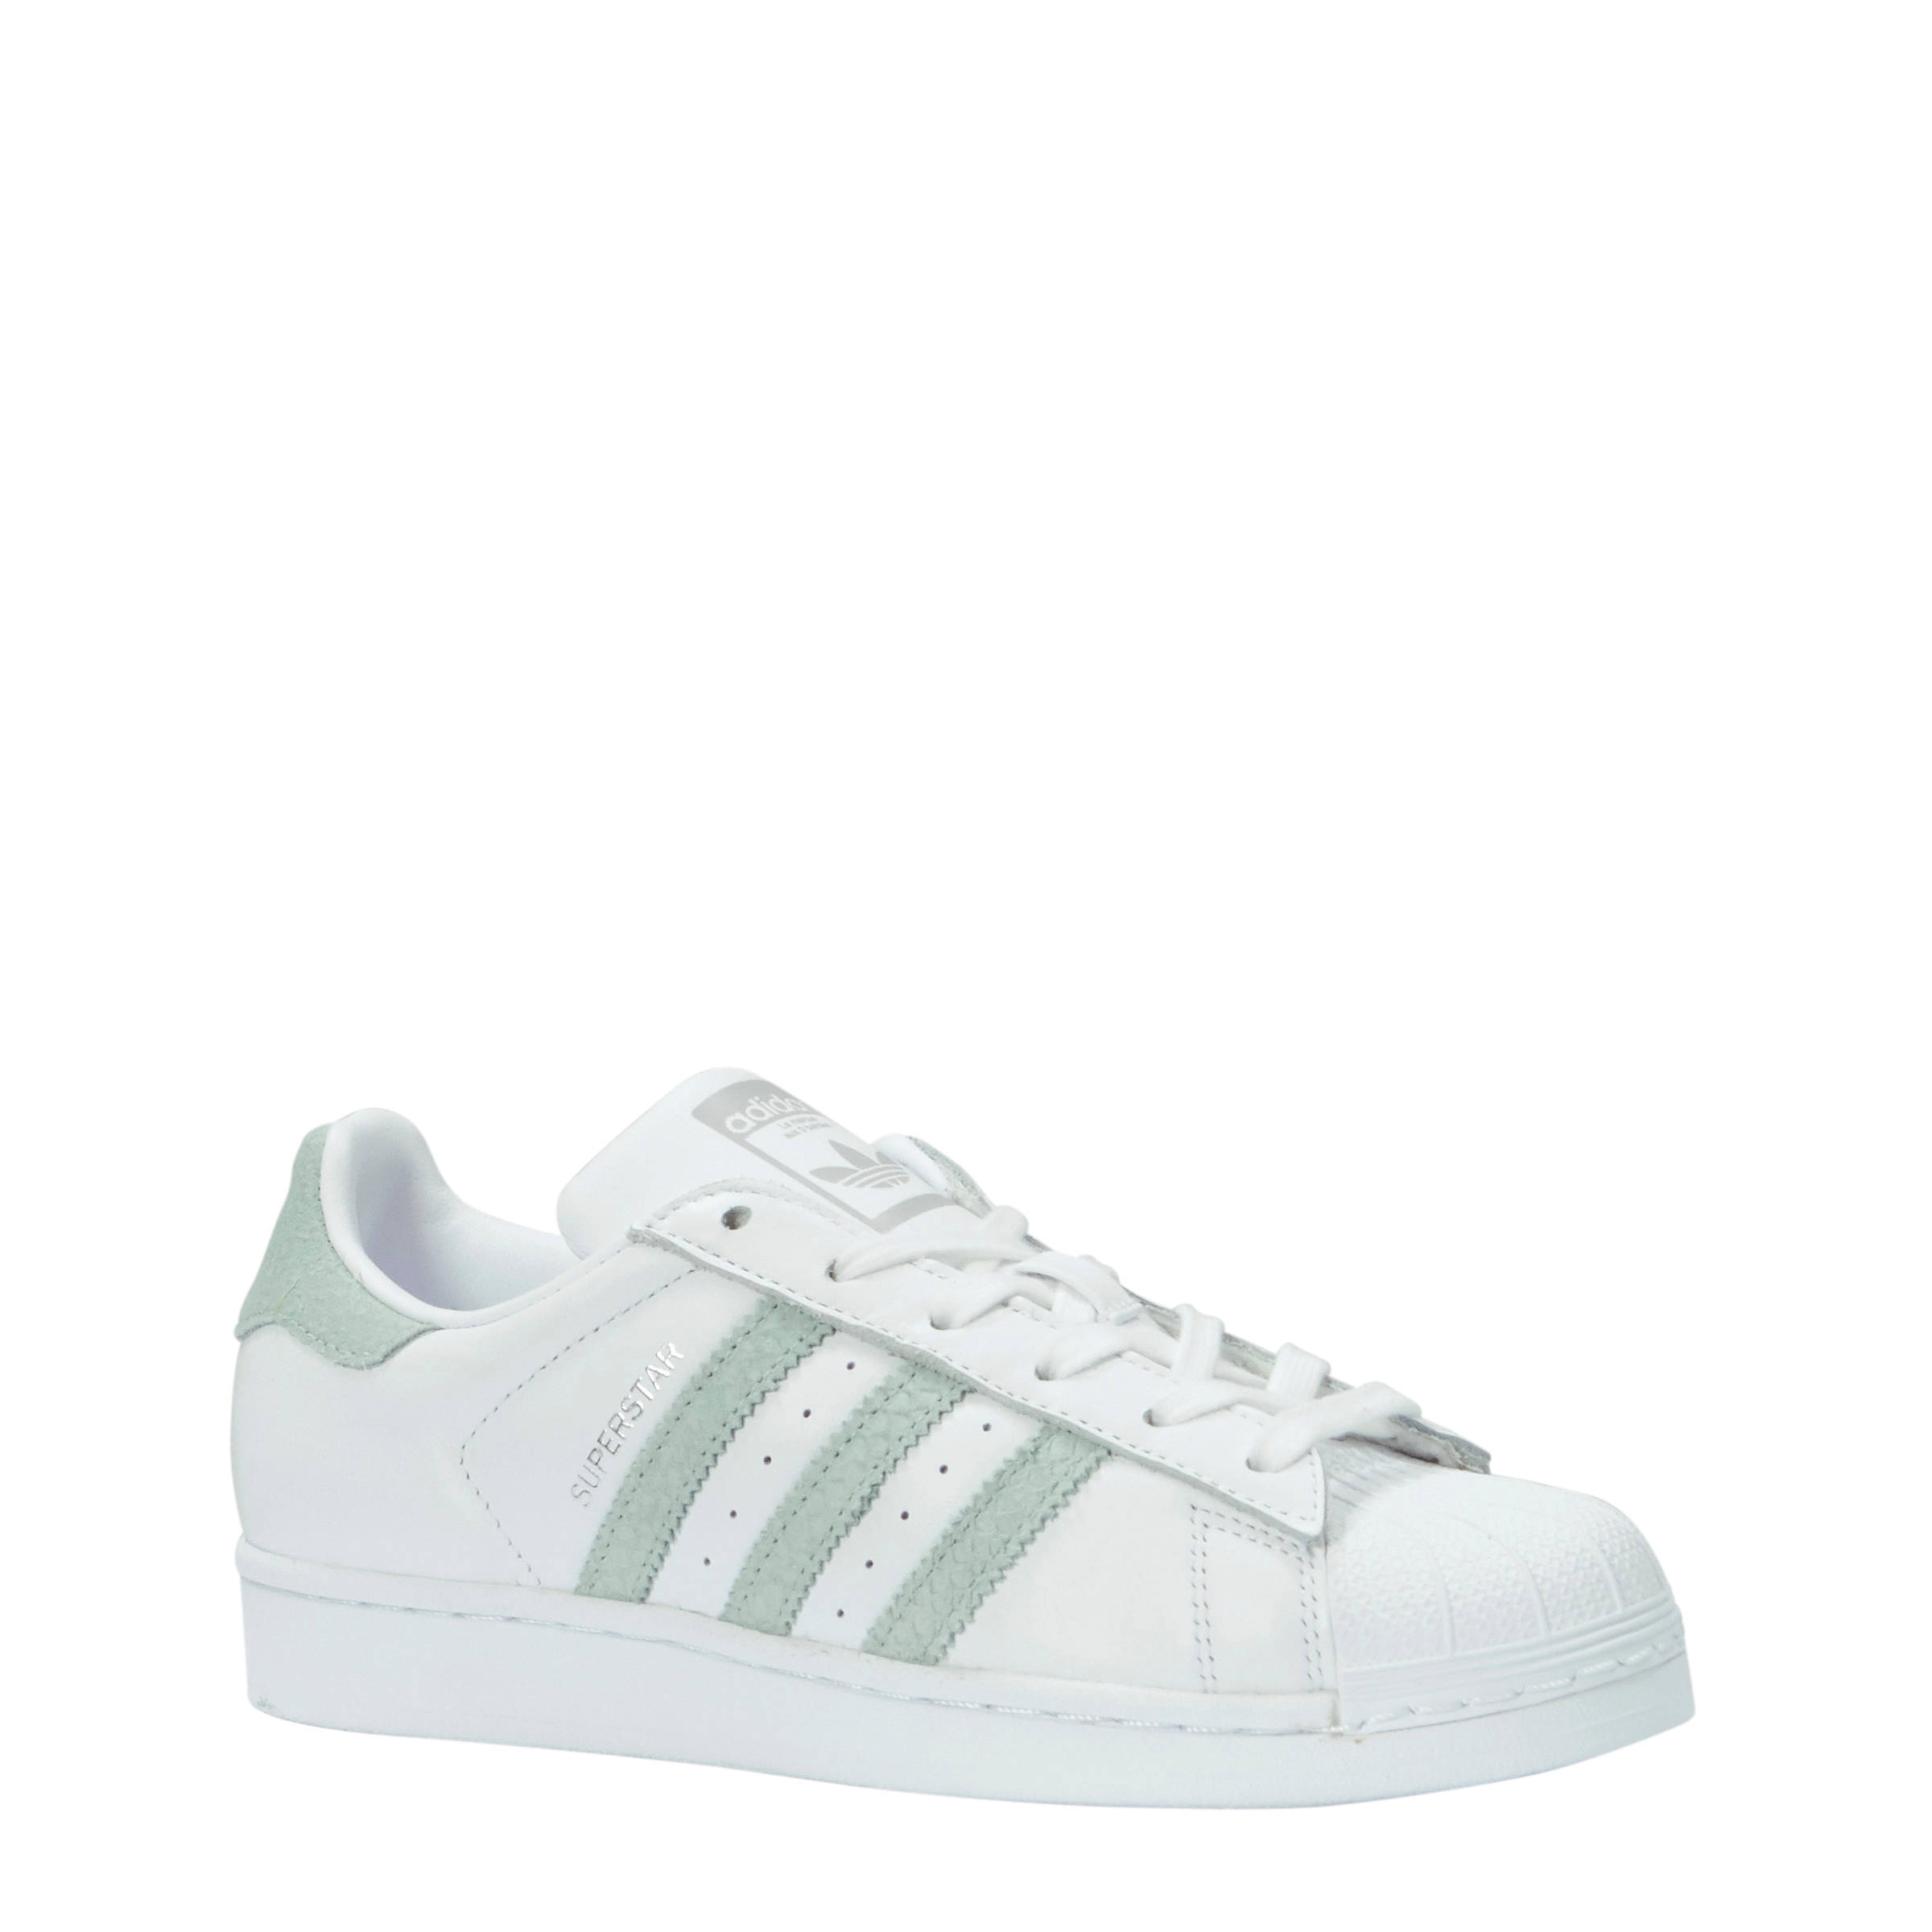 Adidas Leren Sneakers Originals WitmintgroenWehkamp Superstar 3lFT1KcJ